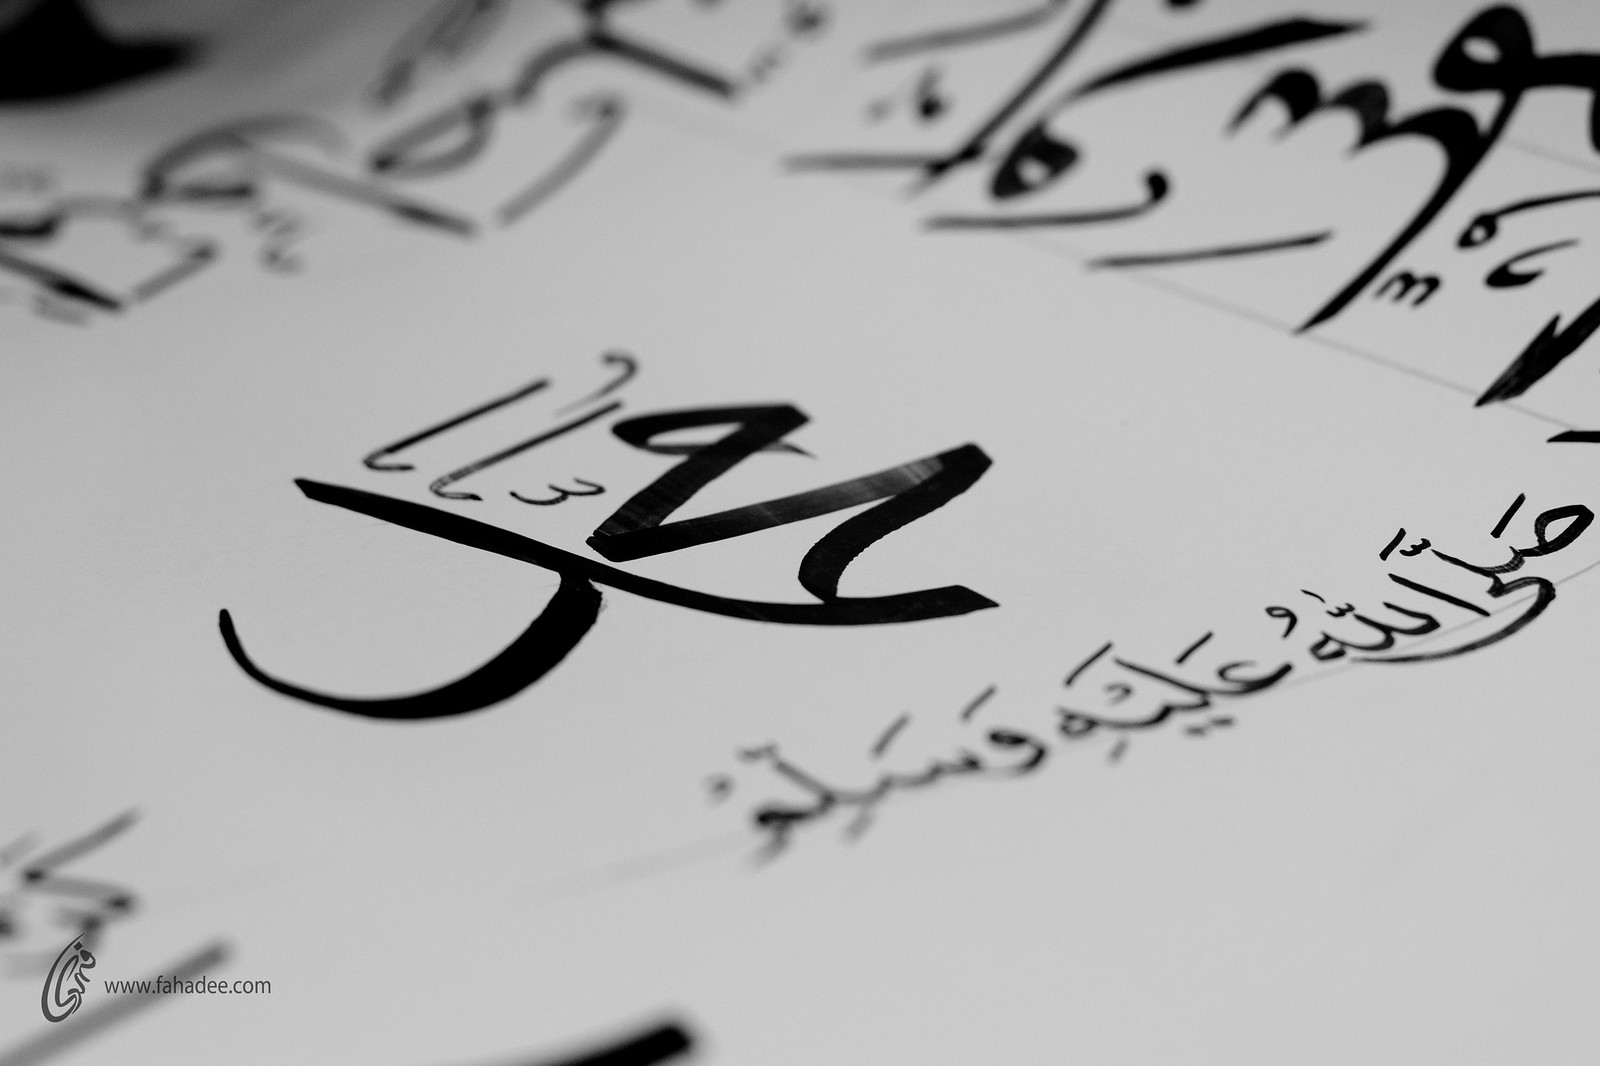 Calligraphy flickr